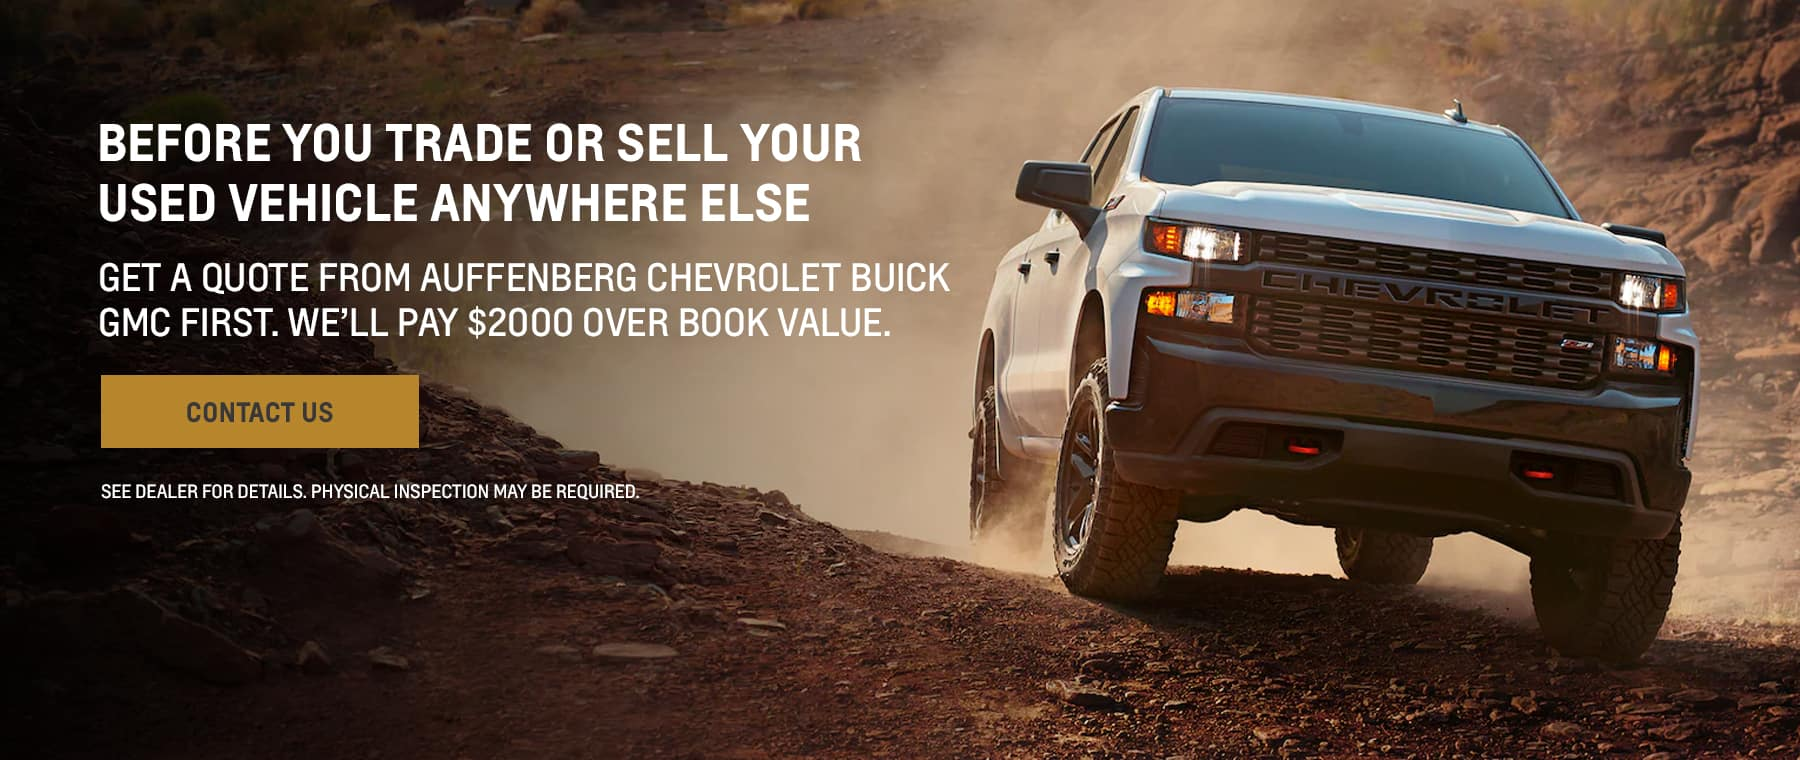 Before you trade or sell your used vehicle anywhere else